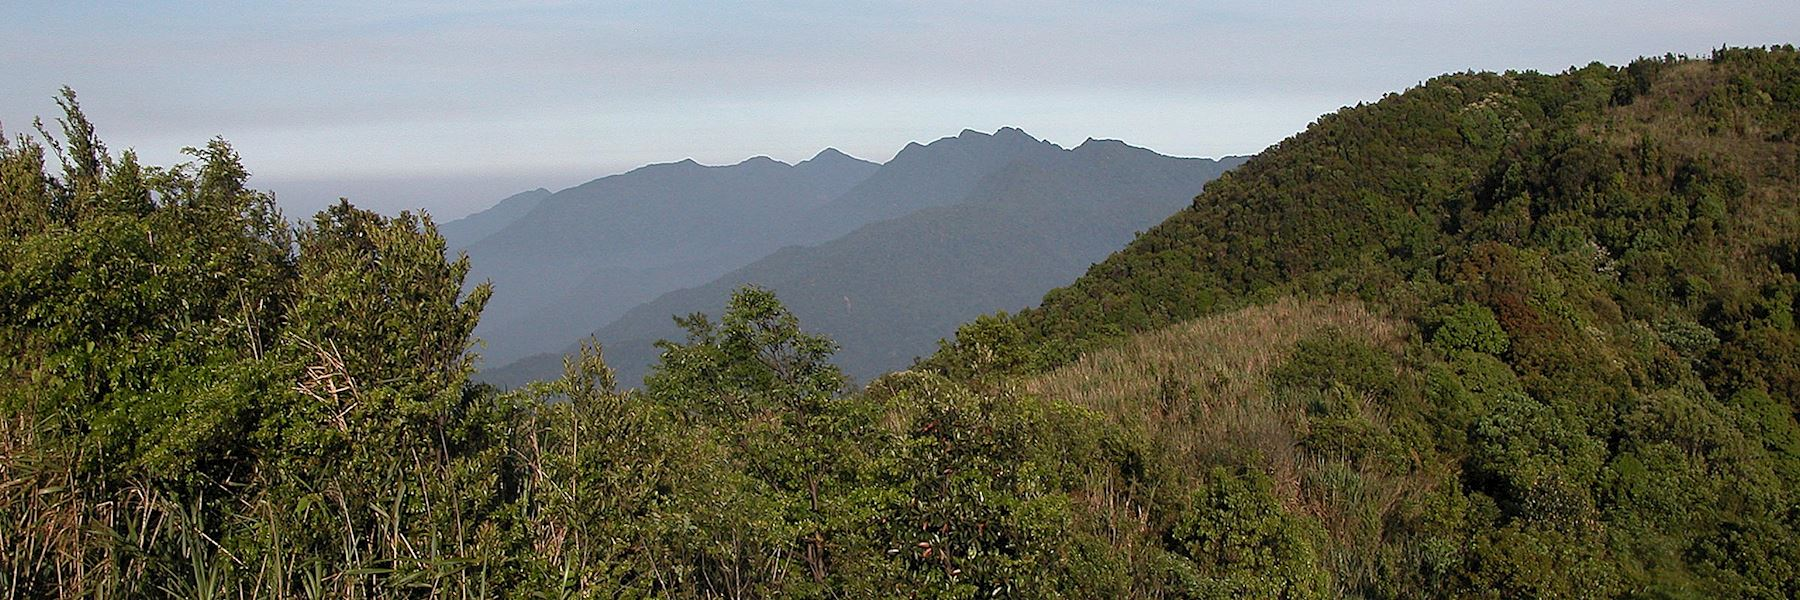 Visit Bach Ma National Park In Vietnam Audley Travel